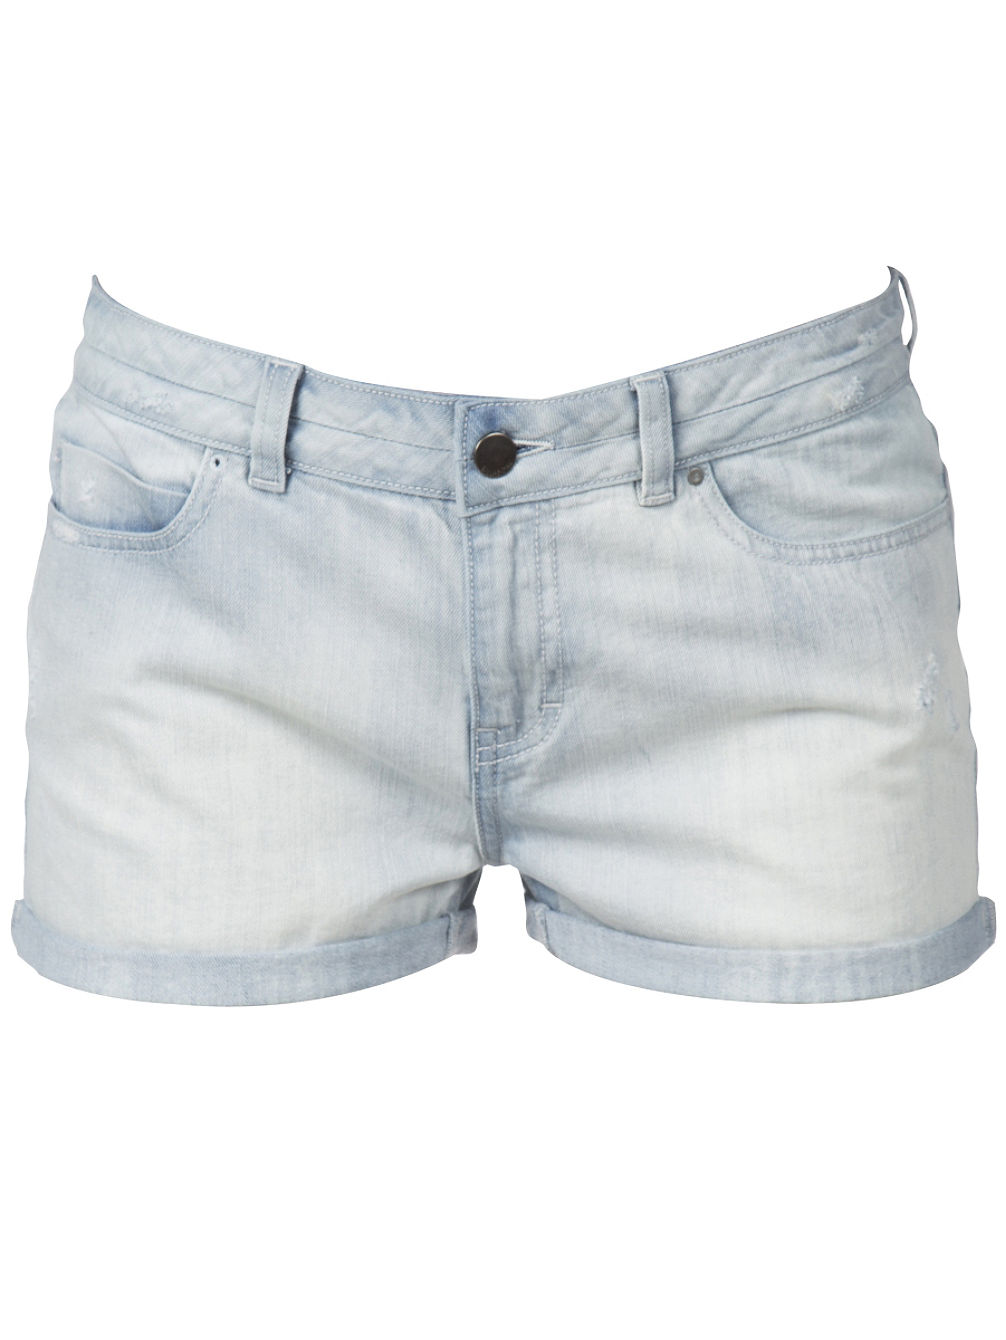 billabong-elvis-2-shorts